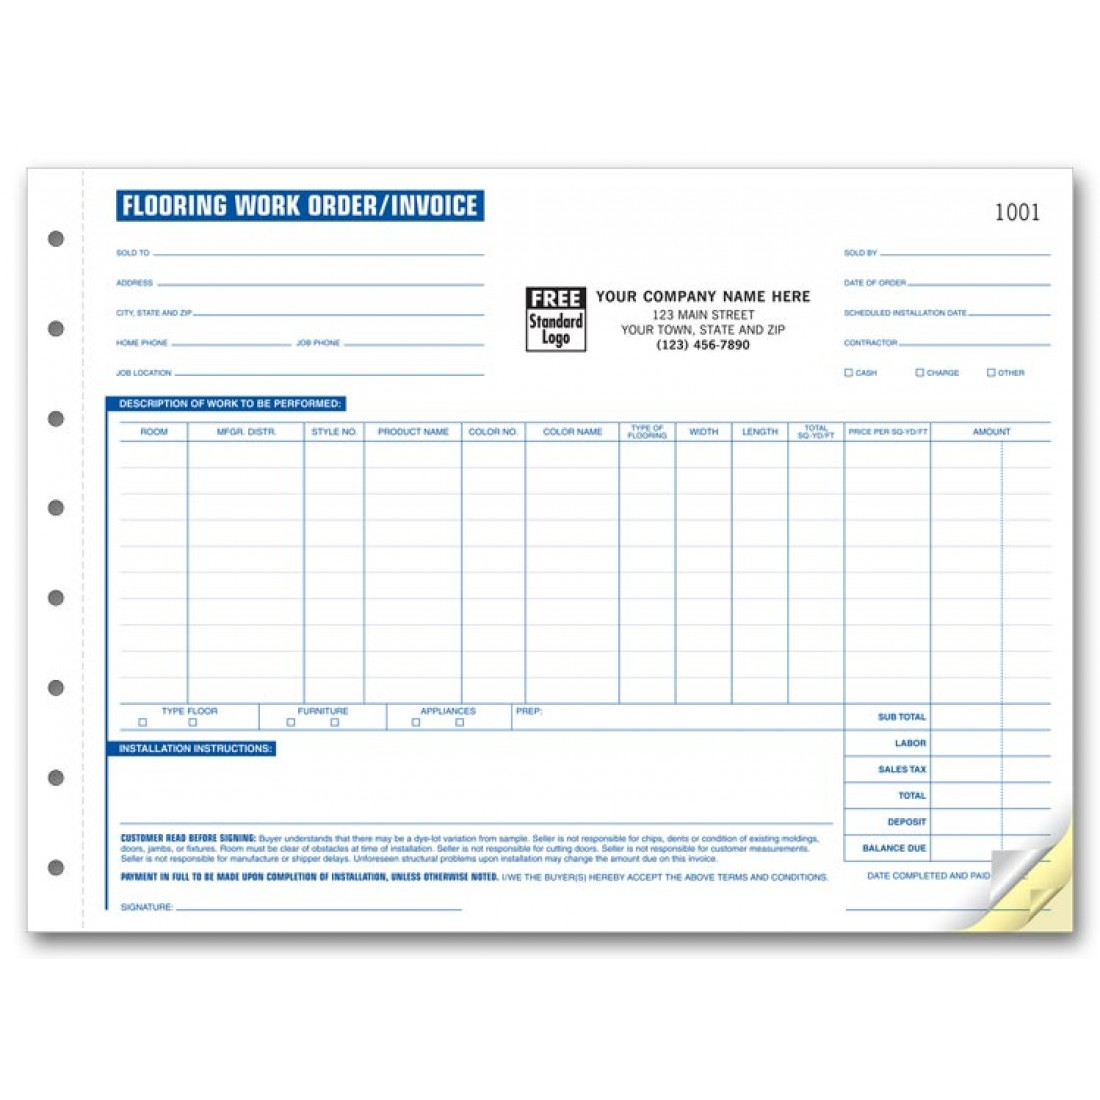 Flooring Work Order Forms | Free Shipping on customer newsletter, customer info, customer email, customer search, customer purchase order, customer events, customer order tracking, accounts receivable form, accounts payable form, customer contract, customer with bags, sample sales receipt form, customer order icon, customer order label, customer notification, customer ordering, crp form, customer order tables, humana health and wellness form, customer order history,